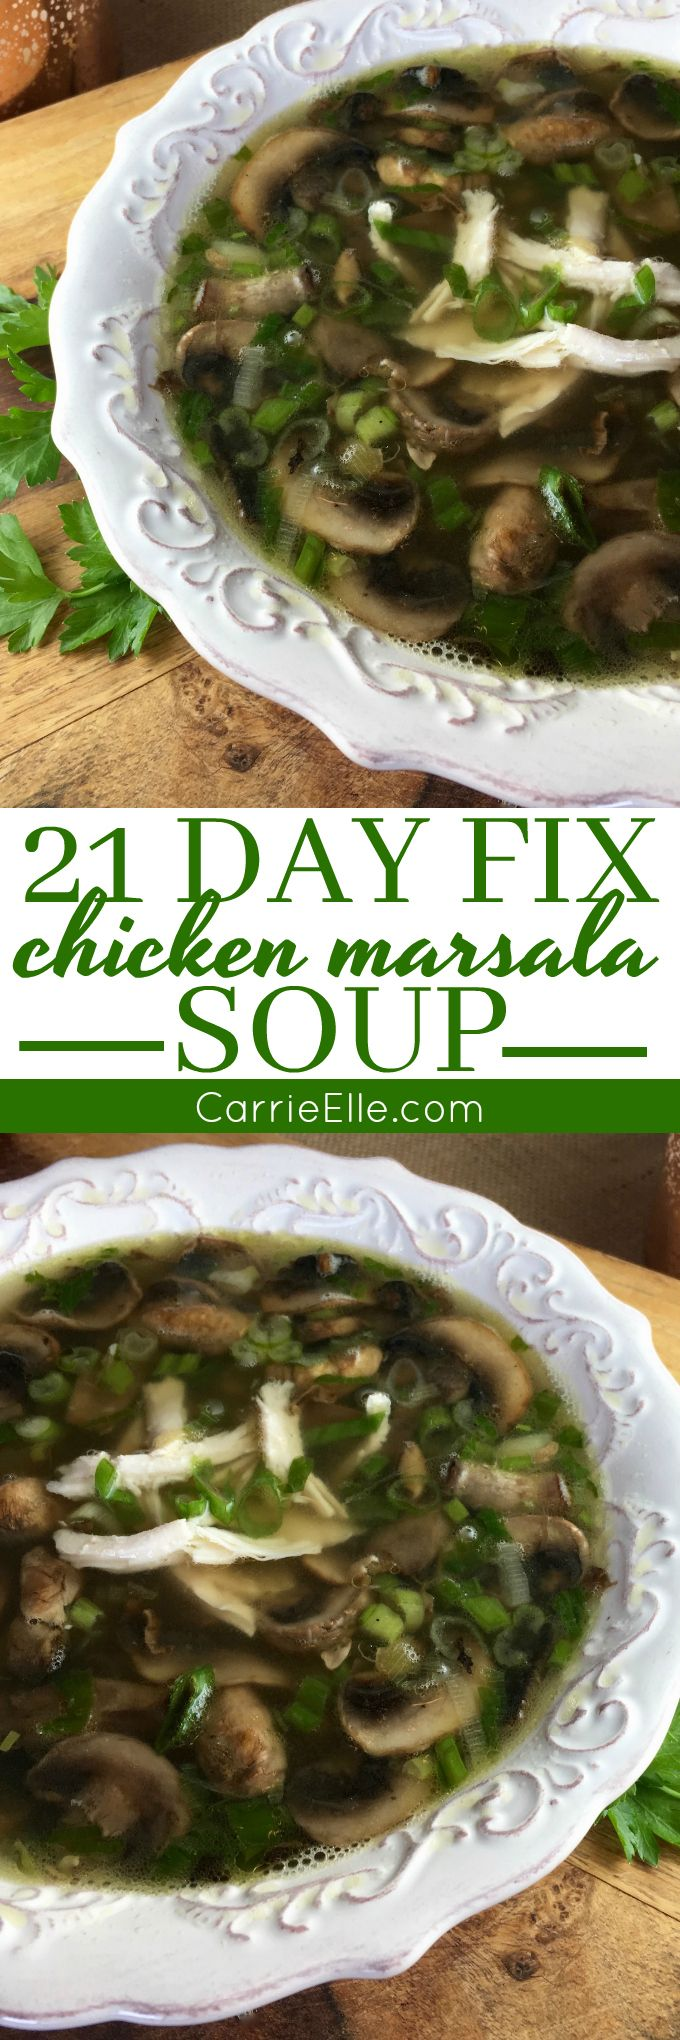 21 Day Fix Chicken Marsala Soup (make it with rotisserie chicken for an easy meal!)